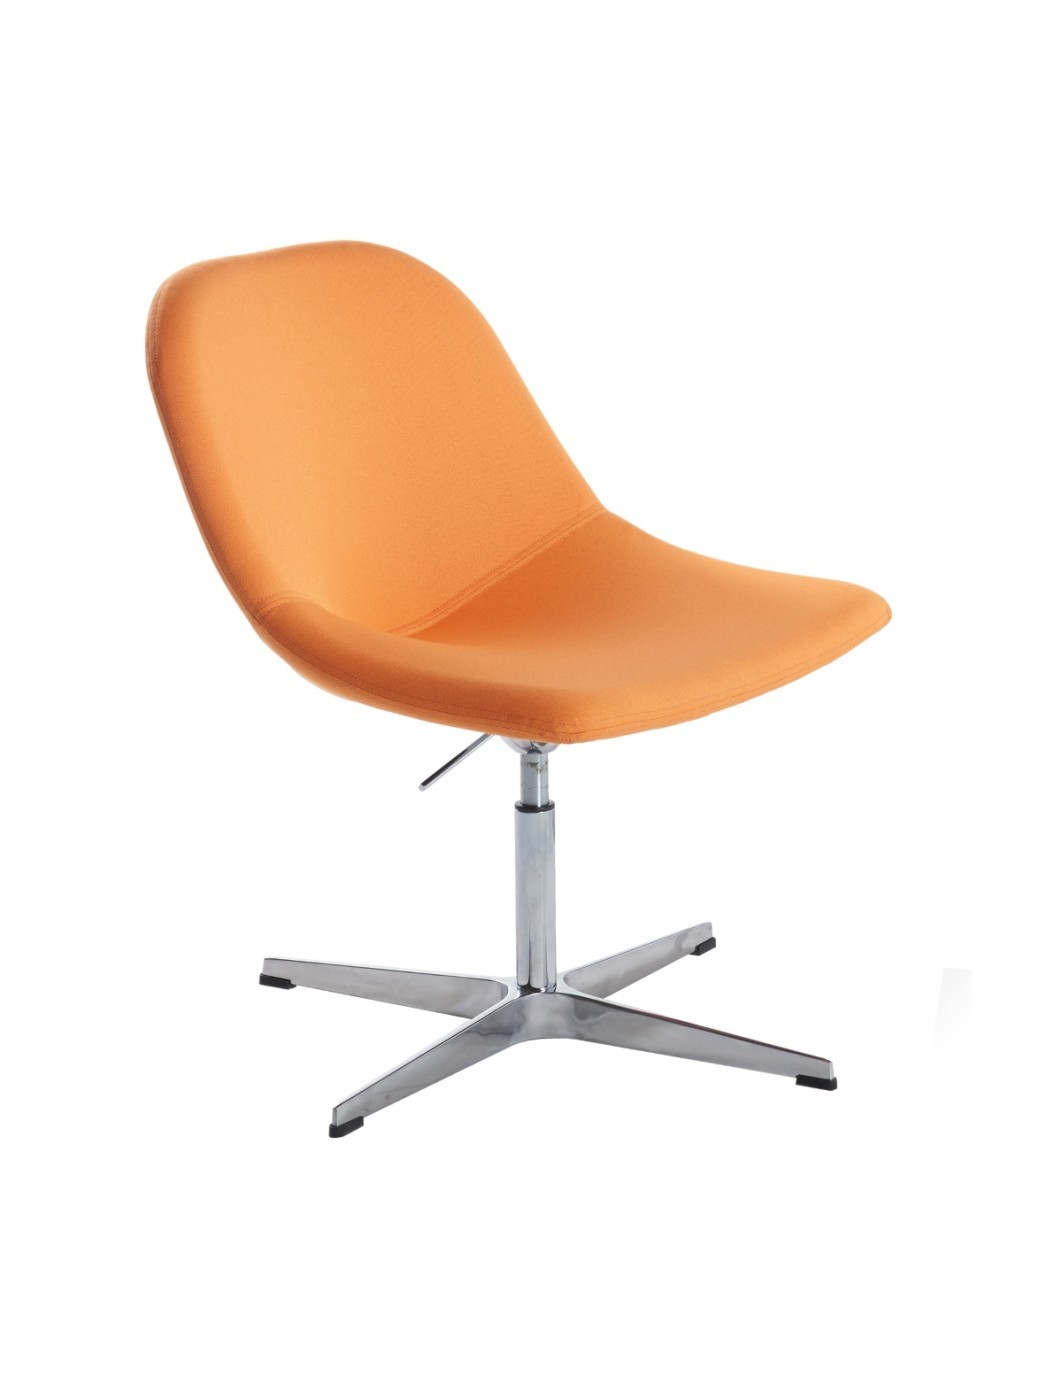 Soft Seating Dams Medley Lounge Chairs Med02 Swivel Base